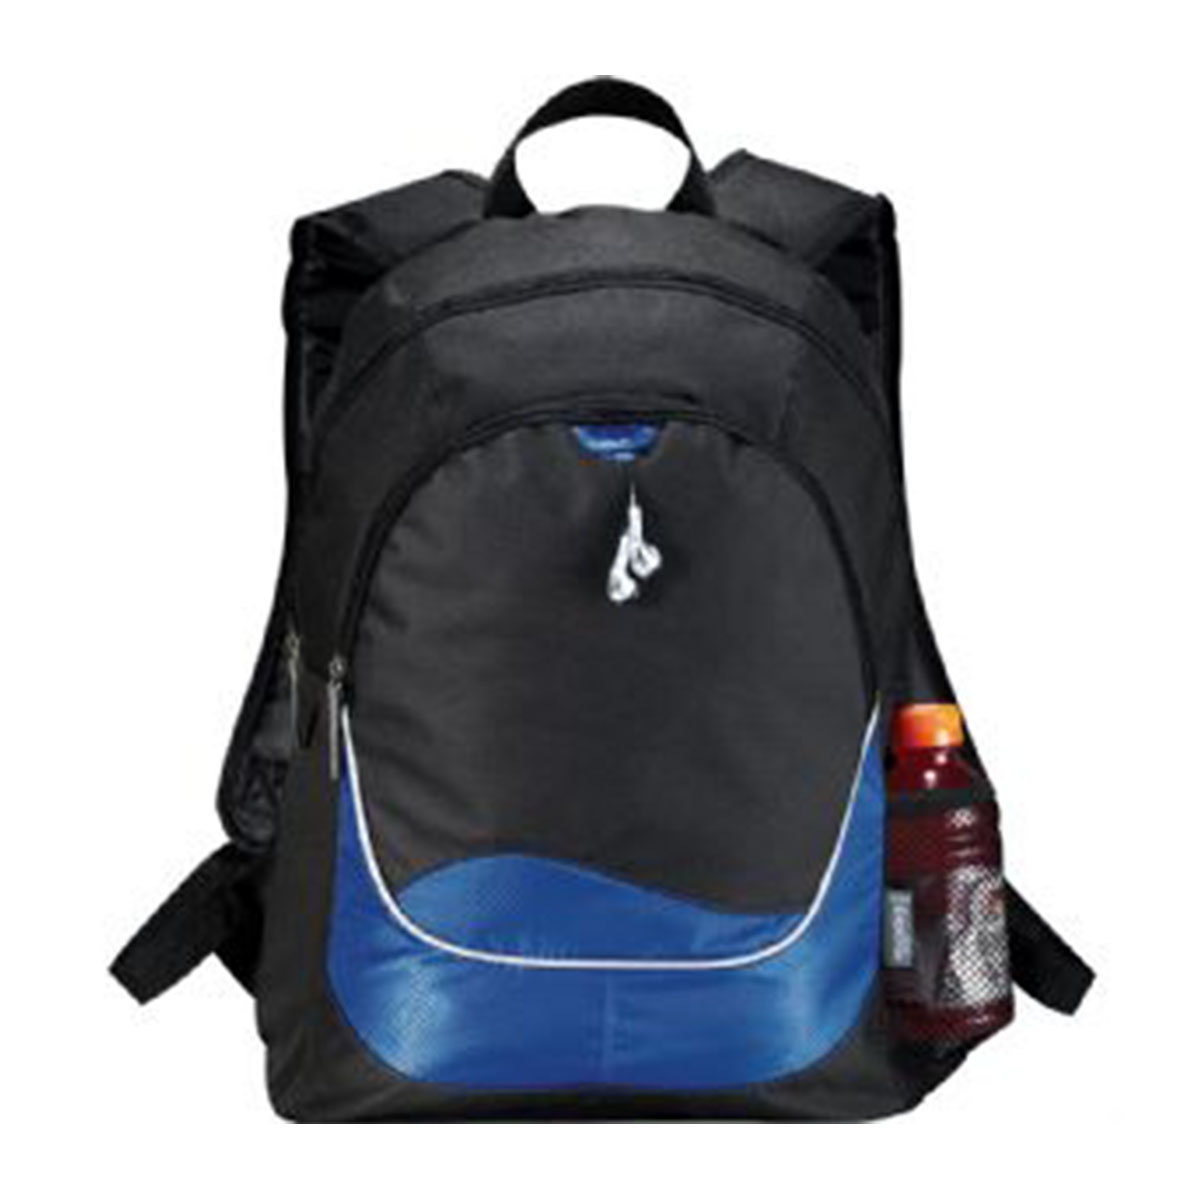 Explorer Backpack-Blue with white trim.